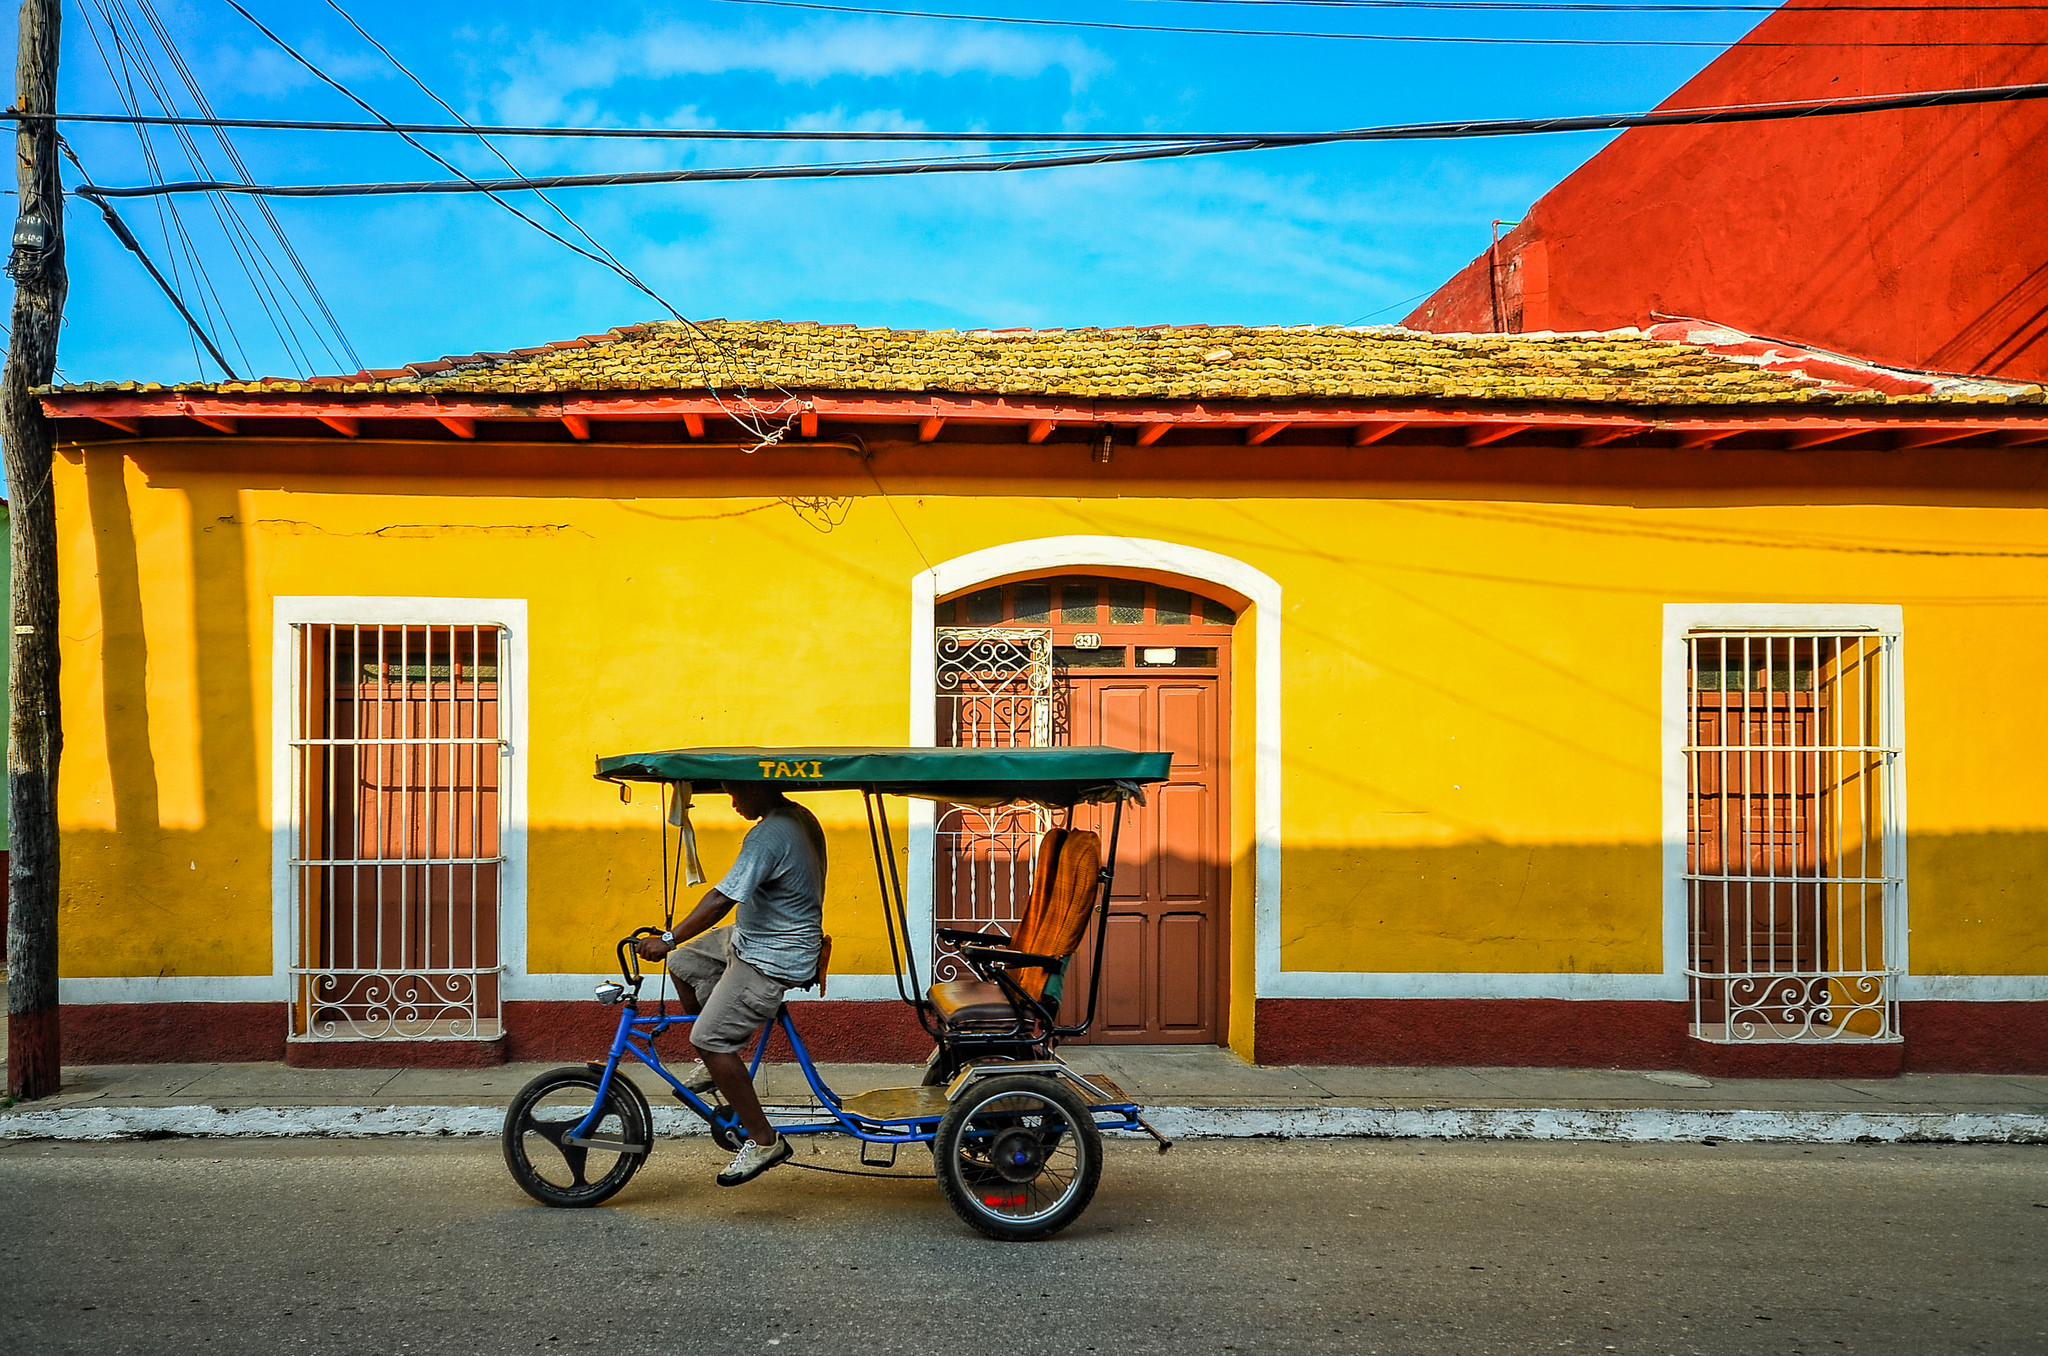 Cruising in Havana. Photo credit: Pedro Szekely